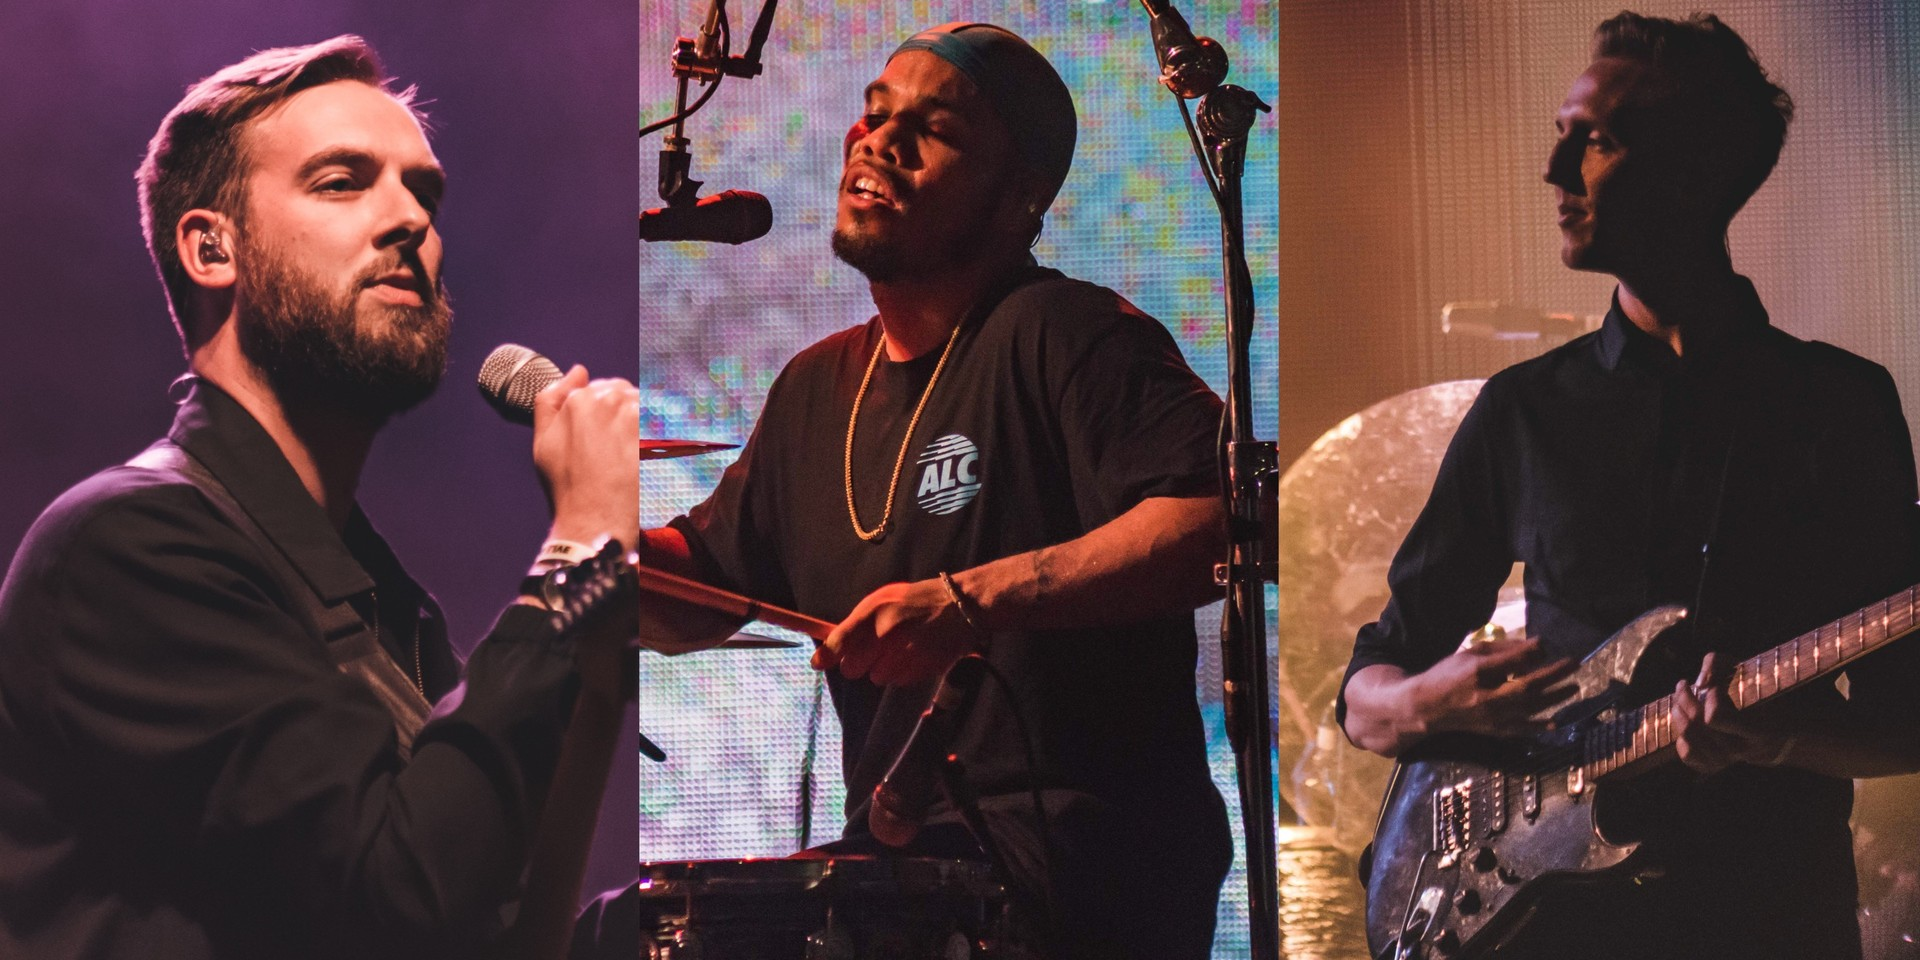 HONNE and Anderson .Paak leave musicians in awe at Karpos Live Mix 1.2